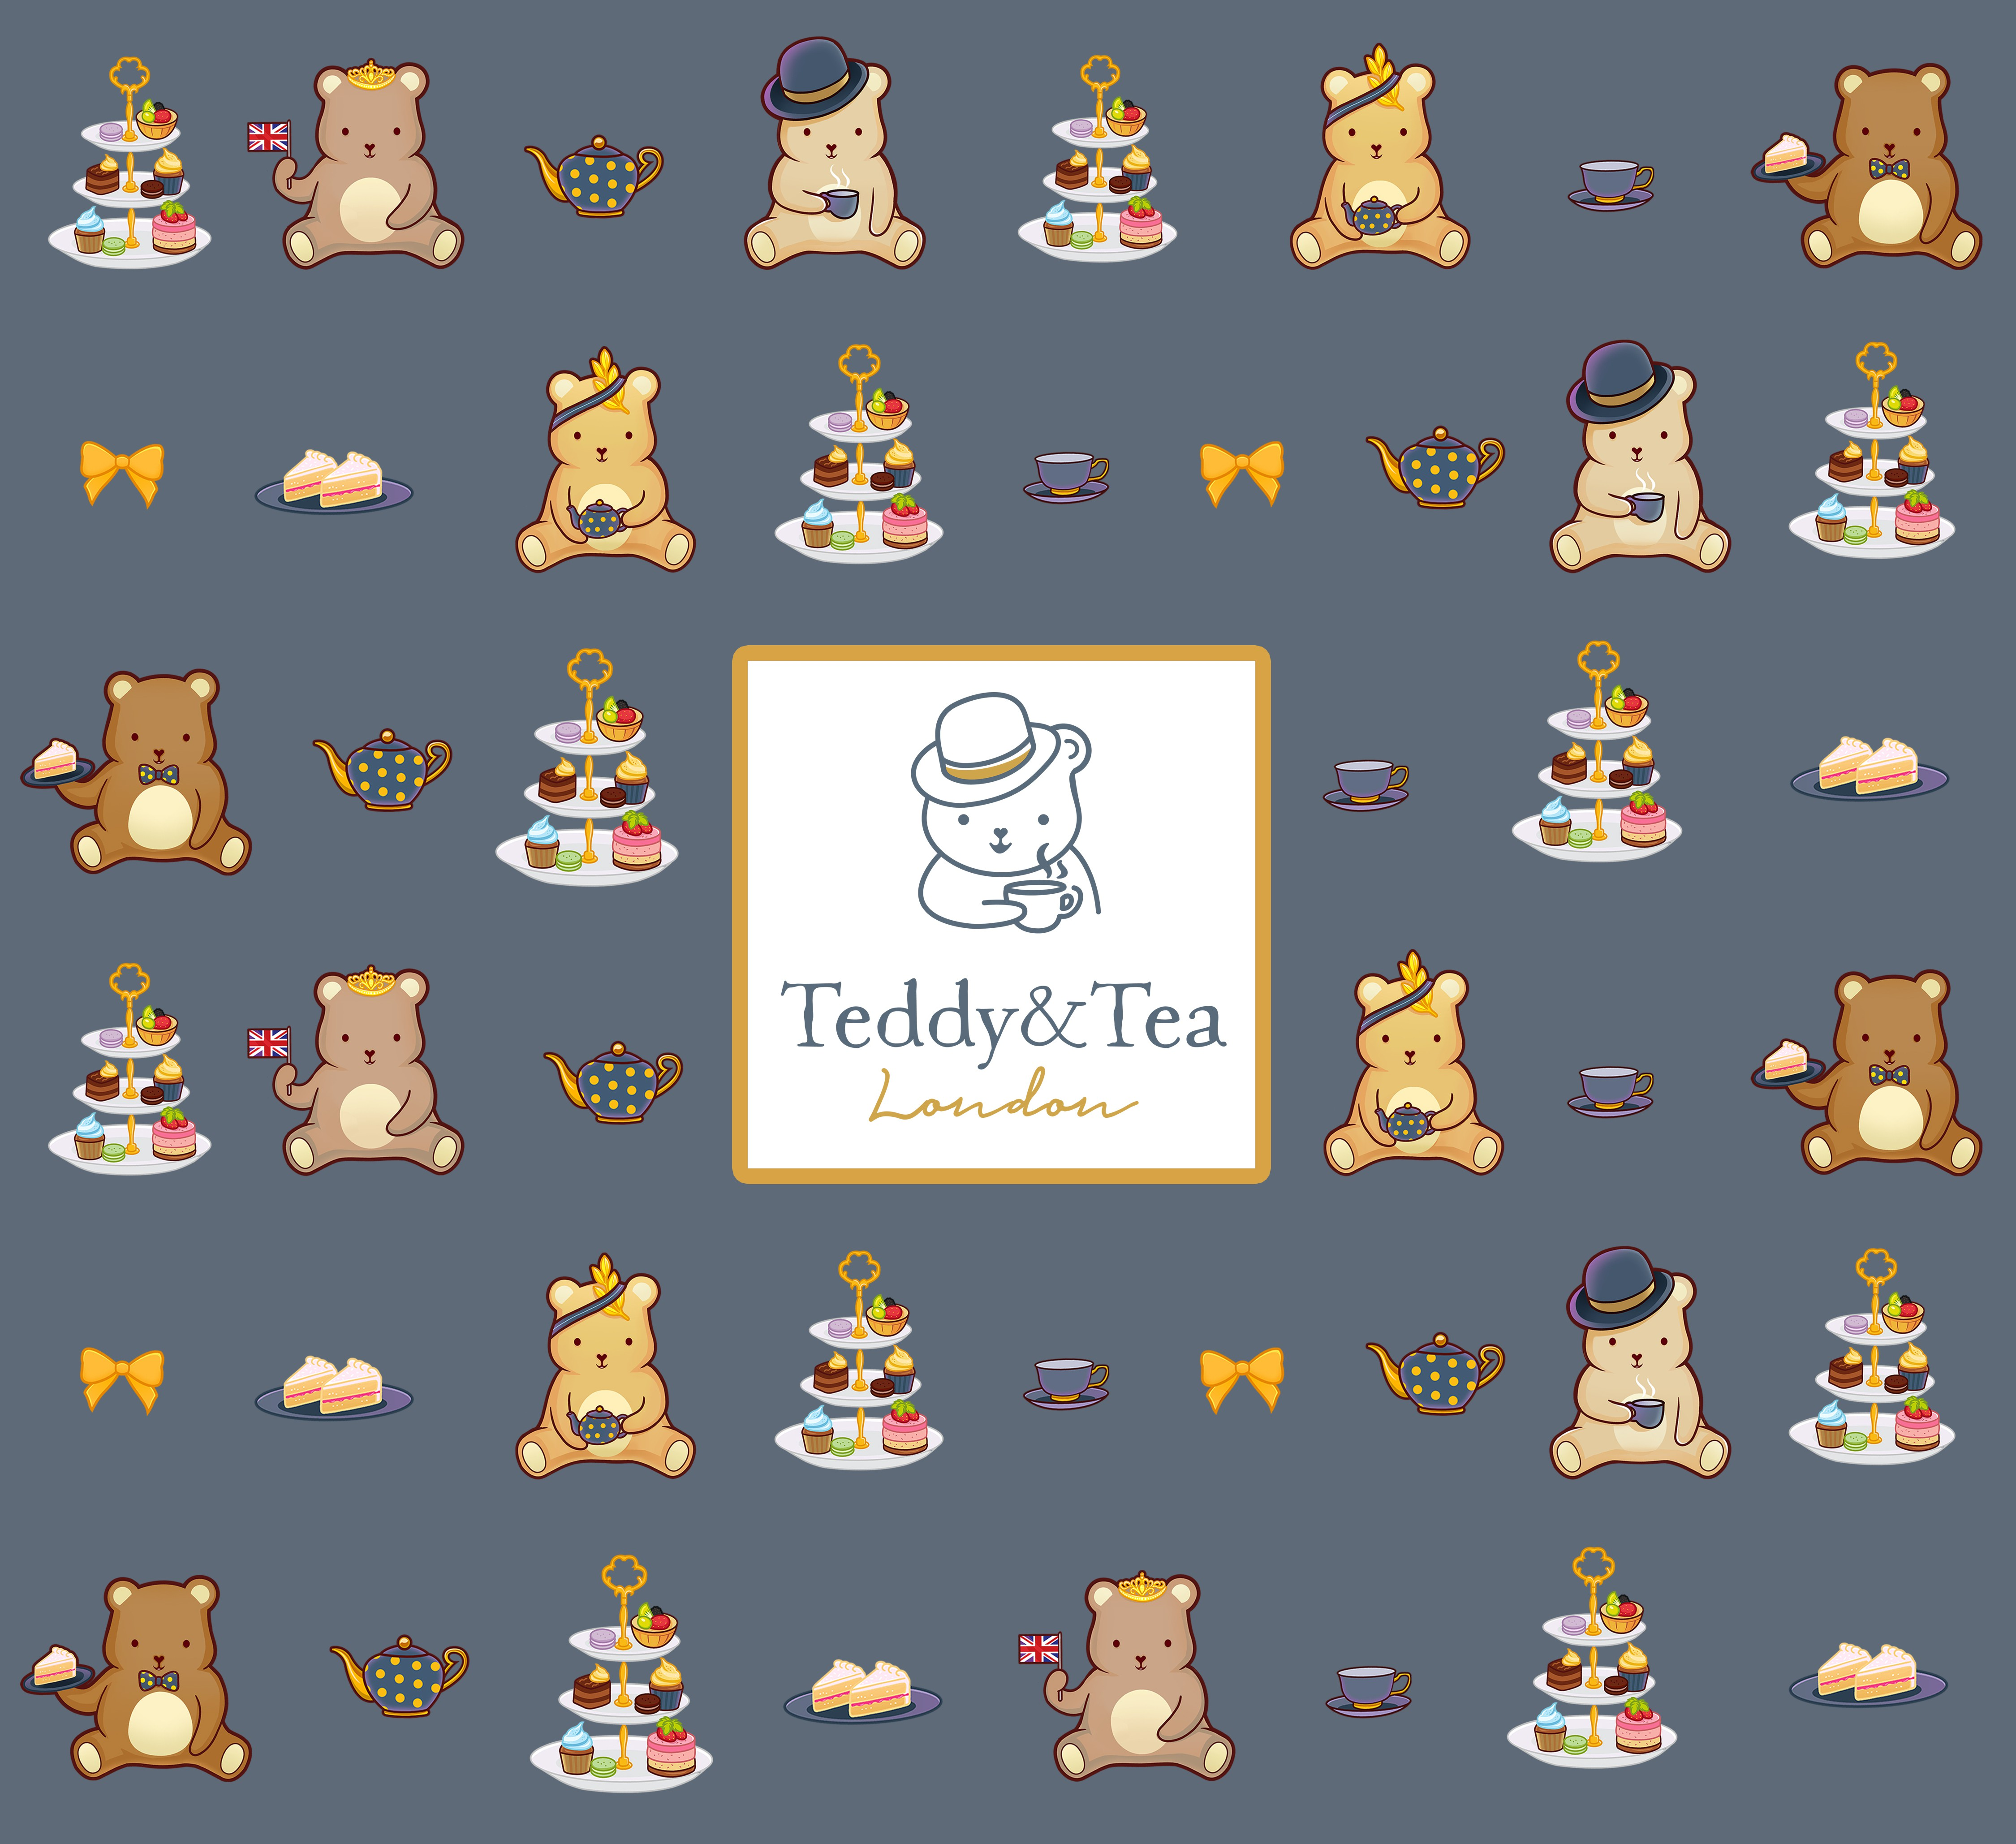 Teddy and Tea - Packaging Design